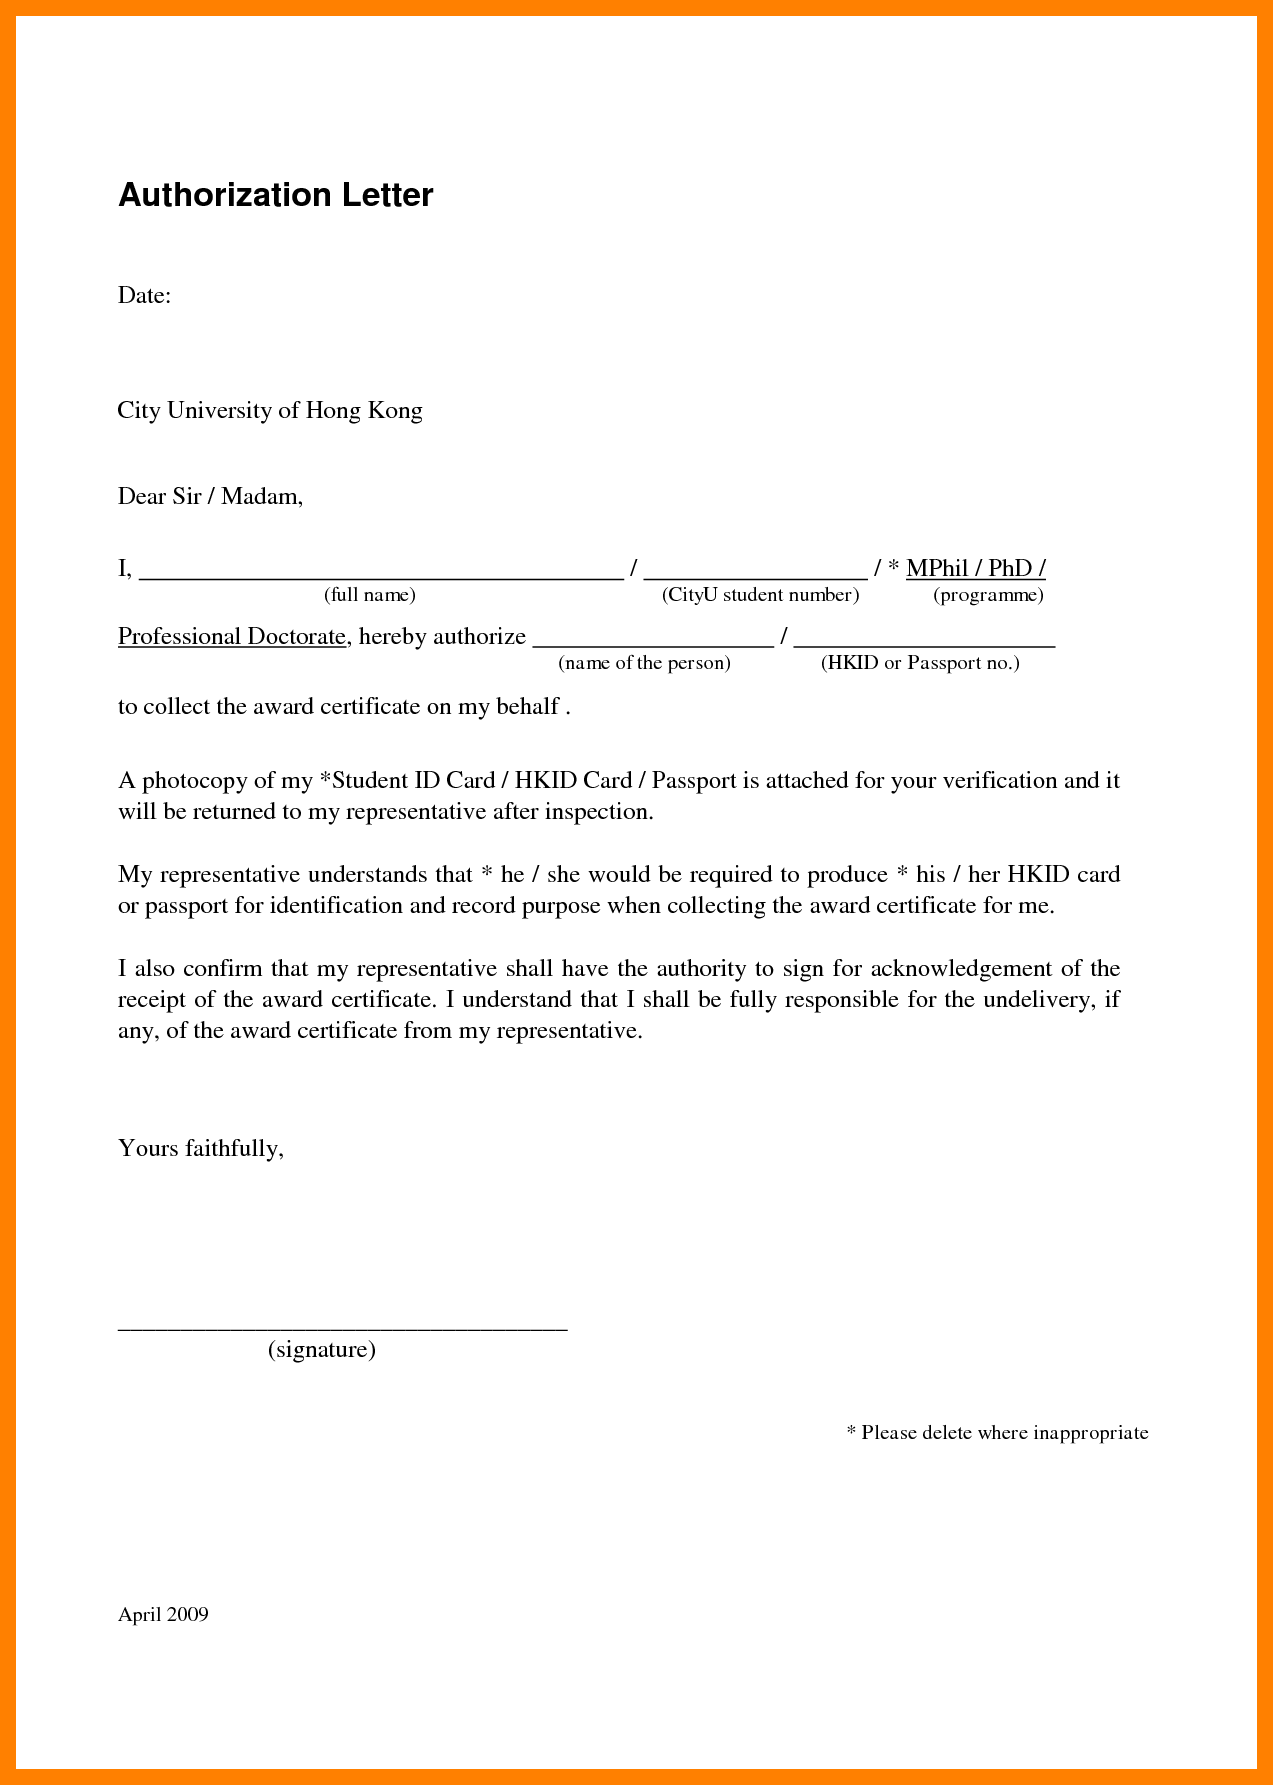 Sample Authorization Letter To Collect Tender Document